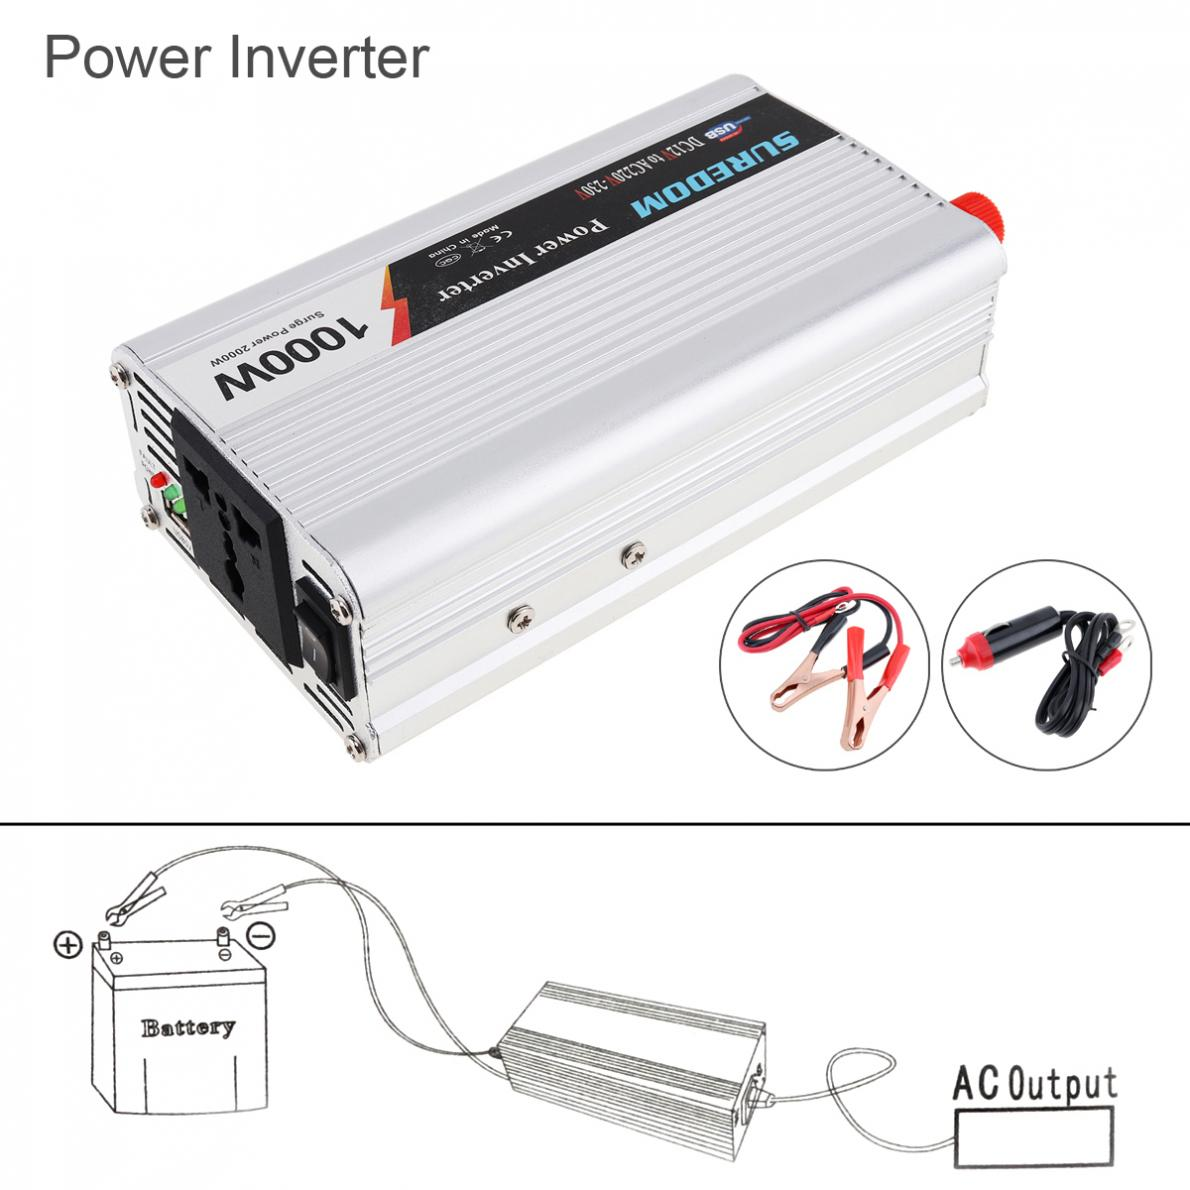 1000W DC 12V <font><b>24V</b></font> to AC <font><b>220V</b></font> 110V USB Portable Car Power <font><b>Inverter</b></font> Adapter Charger Universal Voltage Converter Surge Power <font><b>2000W</b></font> image